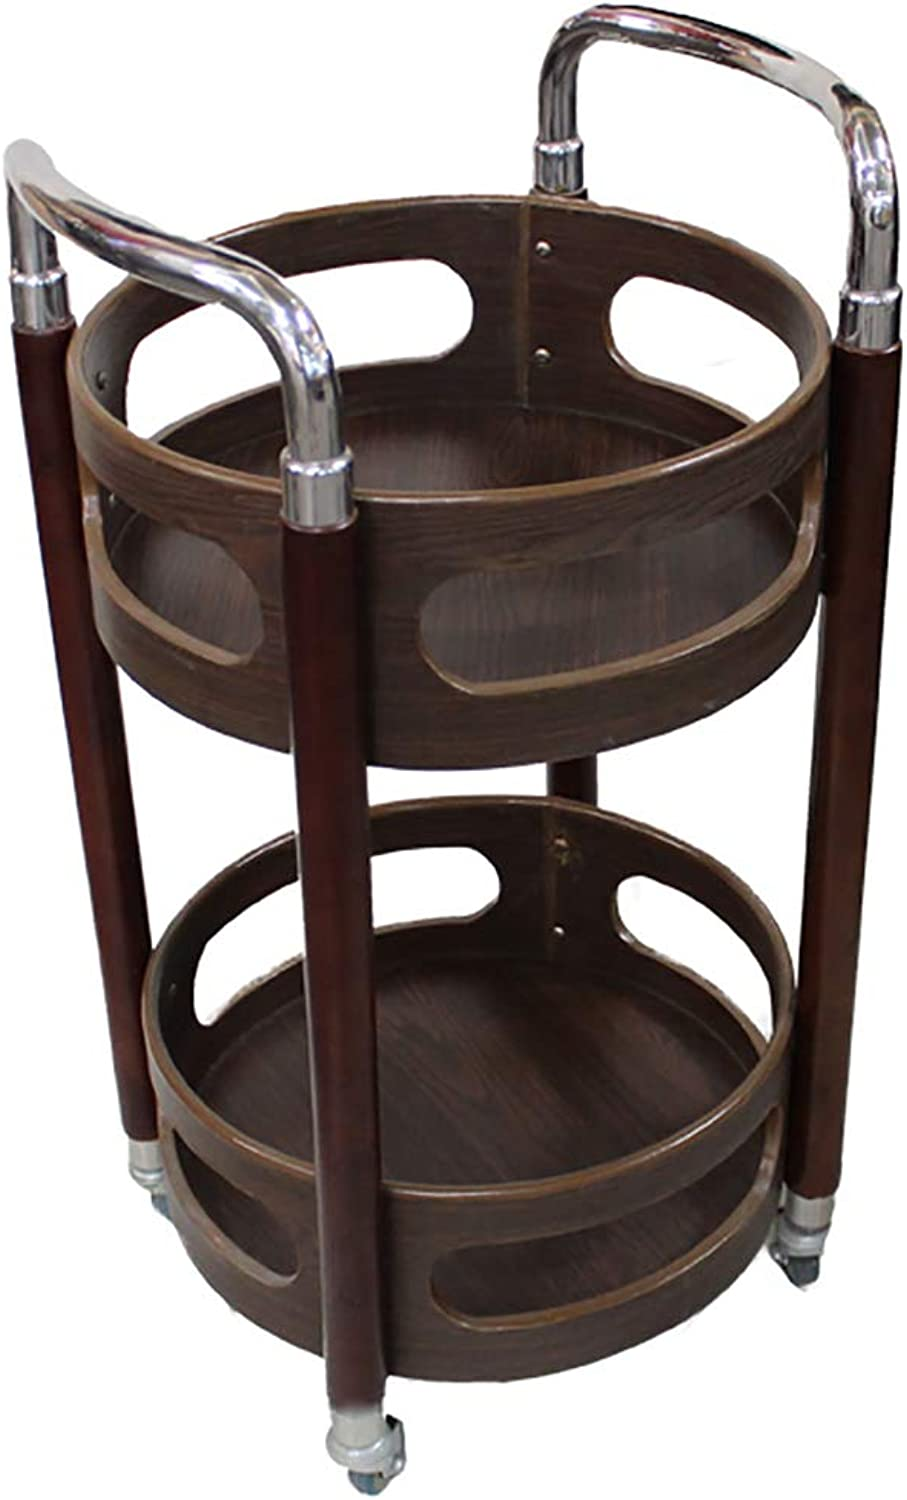 Storage Serving Trolley, Multifunction Utility Metal Solid Wood Cart, Moving Wine Cart Tea Cart, for Home Kitchen Hotel Restaurant 4 Styles